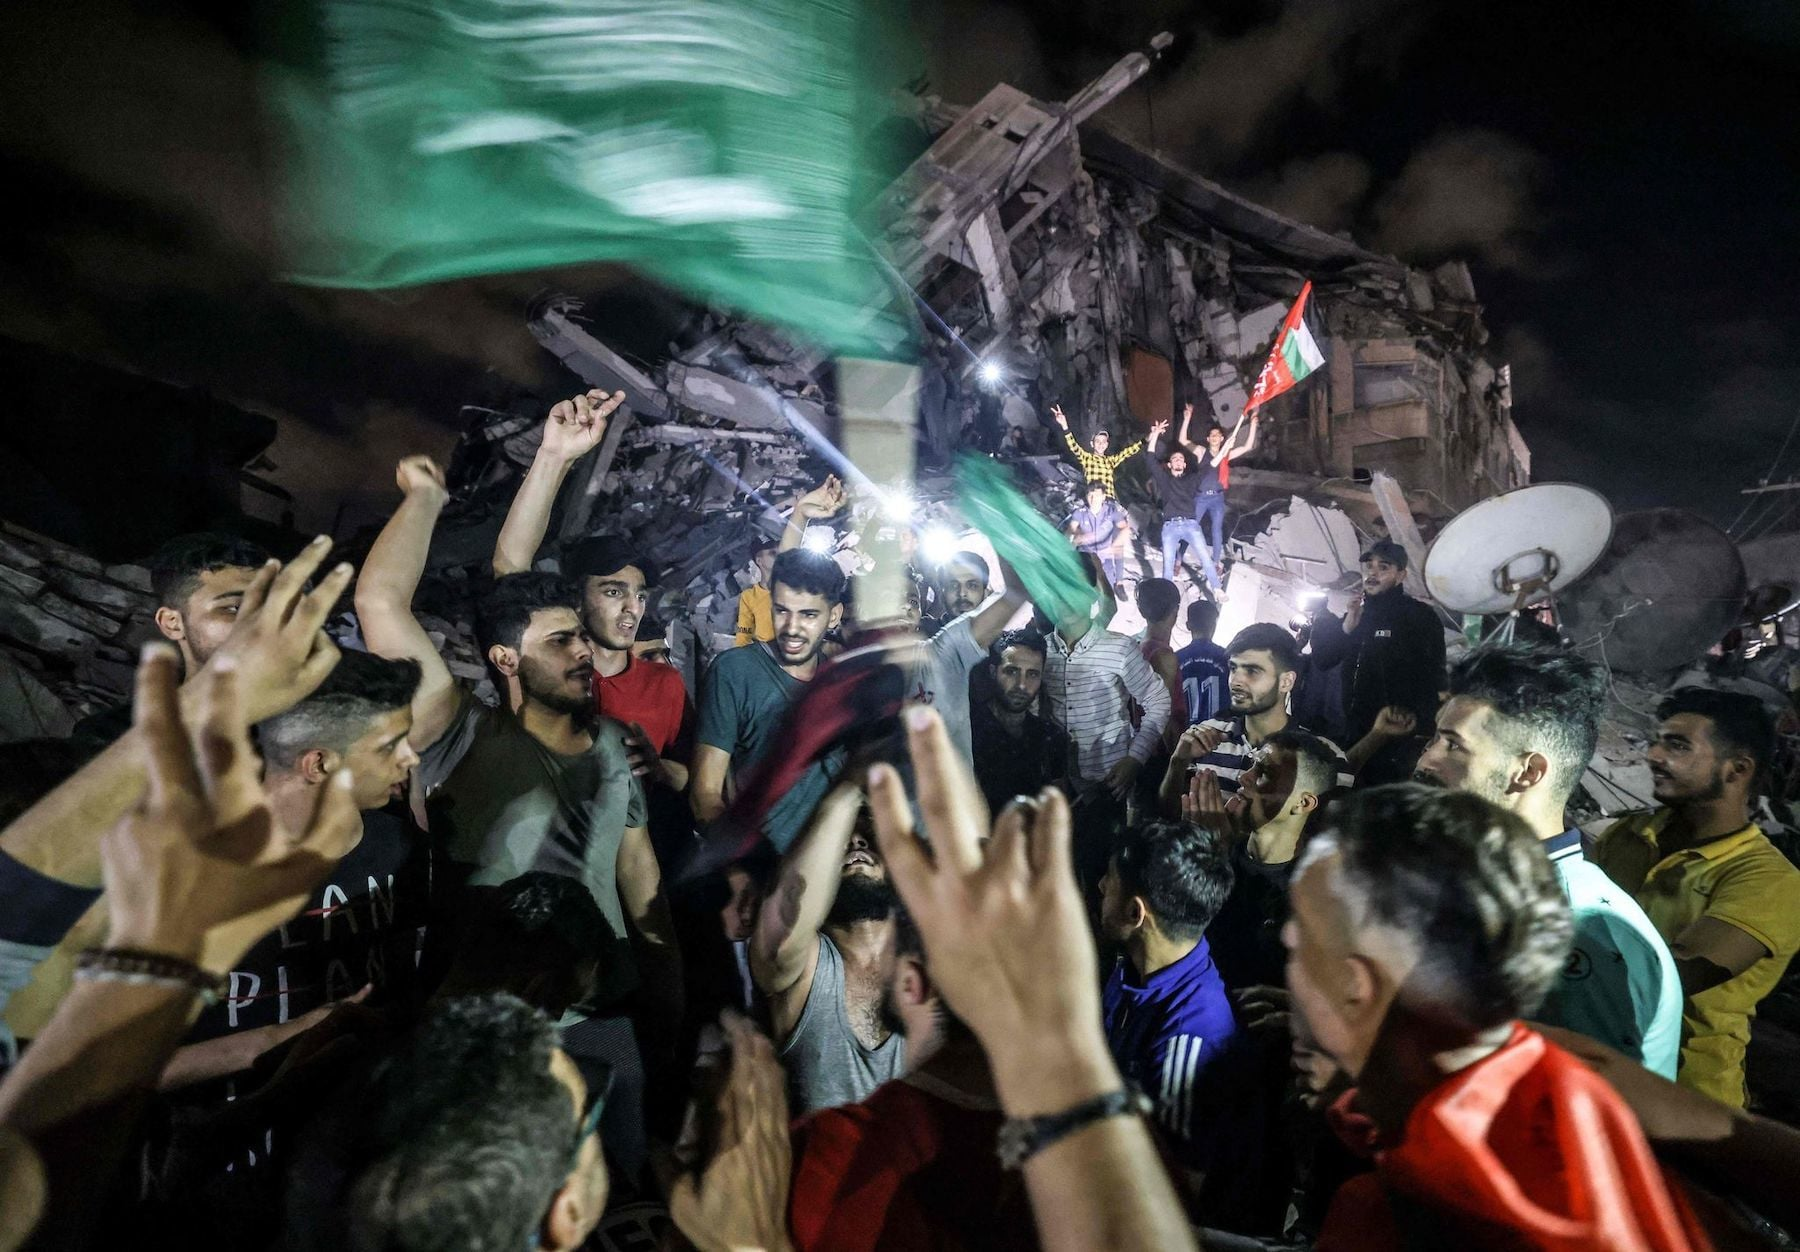 Palestinians celebrate in front of a destroyed building in Gaza City early on May 21, 2021, following a ceasefire brokered by Egypt between Israel and the ruling Hamas in the Gaza Strip. — AFP